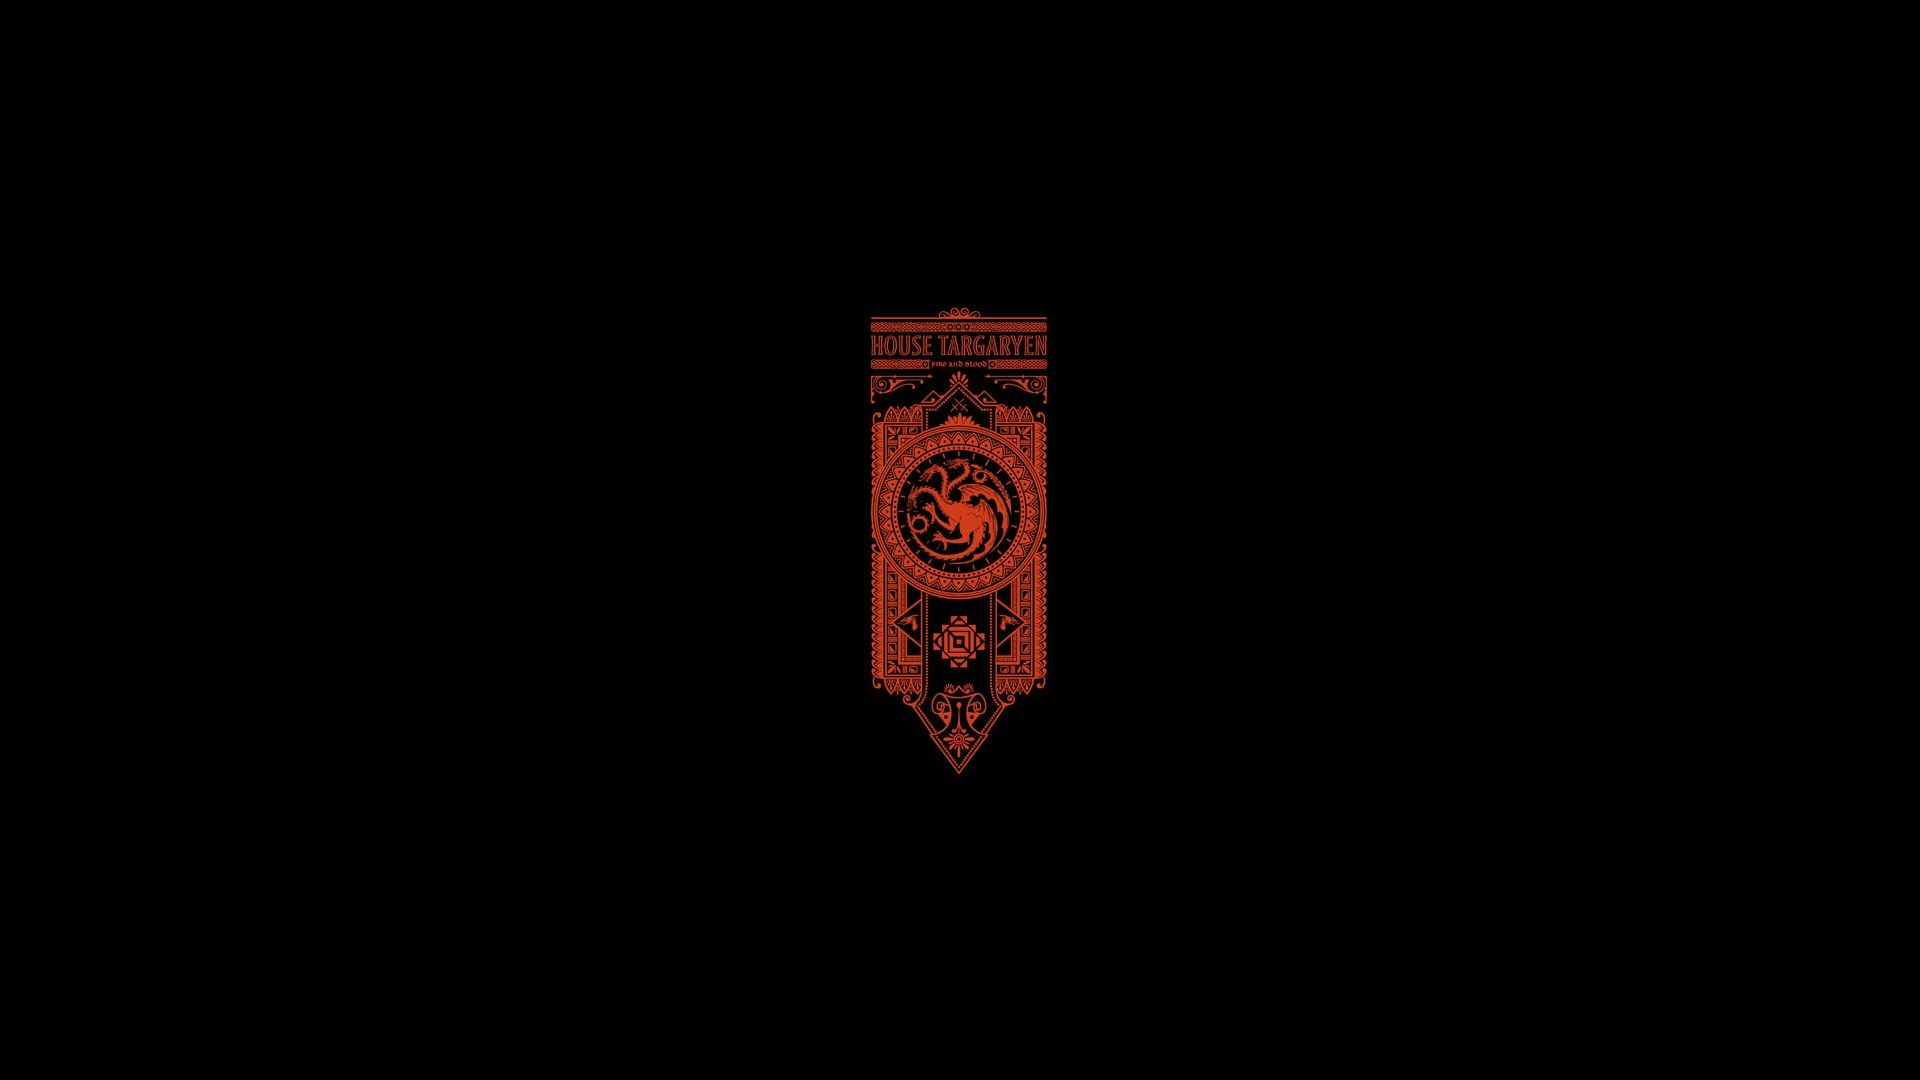 1920x1080px Game Of Thrones Wallpaper For Desktop Background By Dane Chester Minimalist Wallpaper Game Of Thrones Movie Mobile Legend Wallpaper